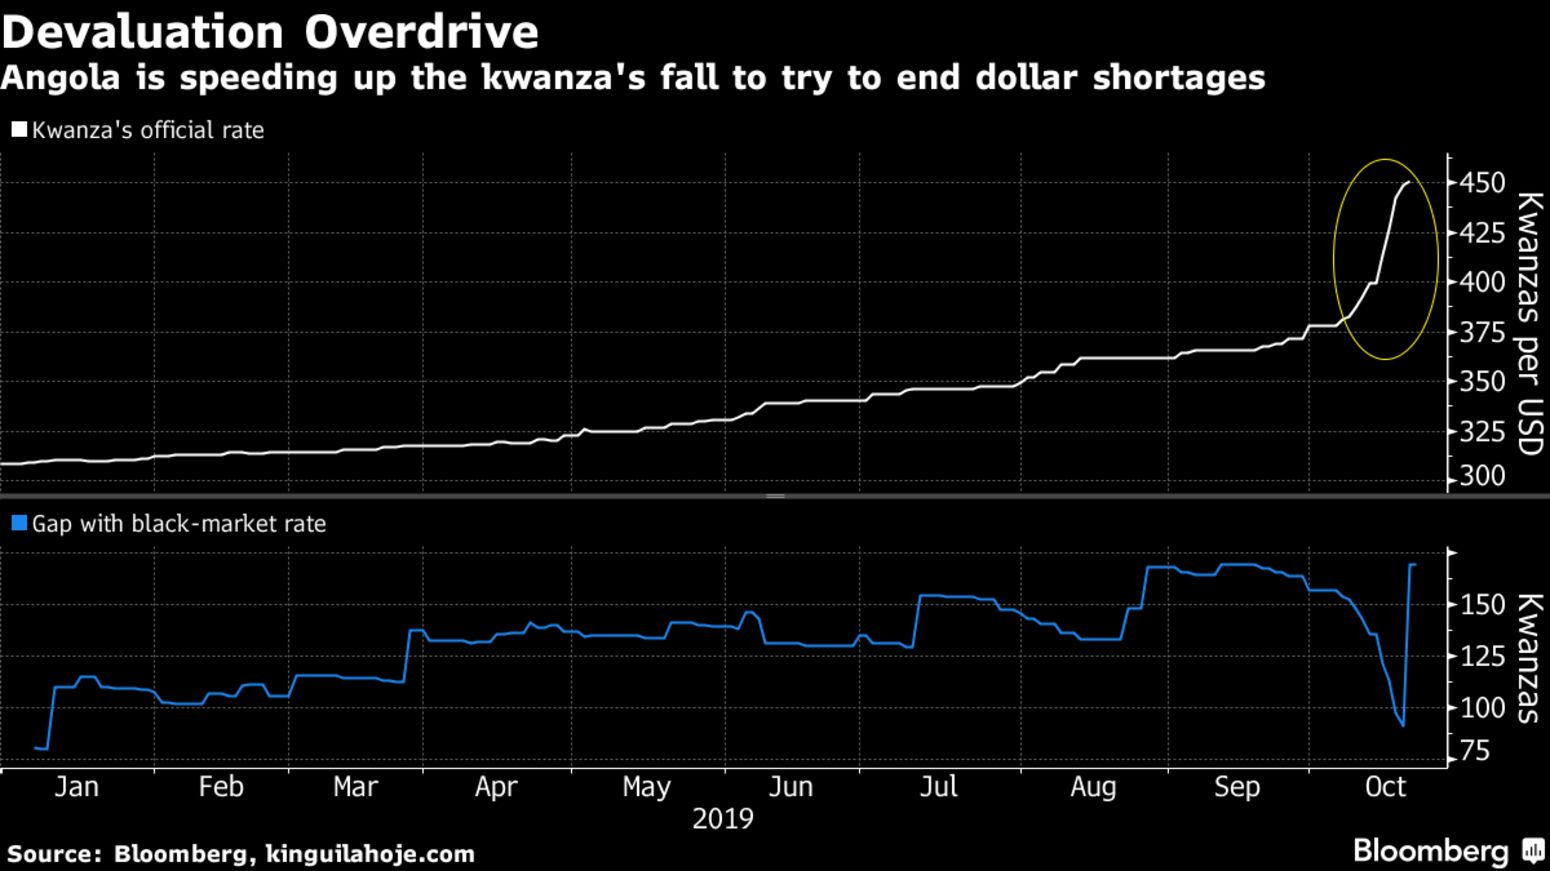 Angola is speeding up the kwanza's fall to try to end dollar shortages